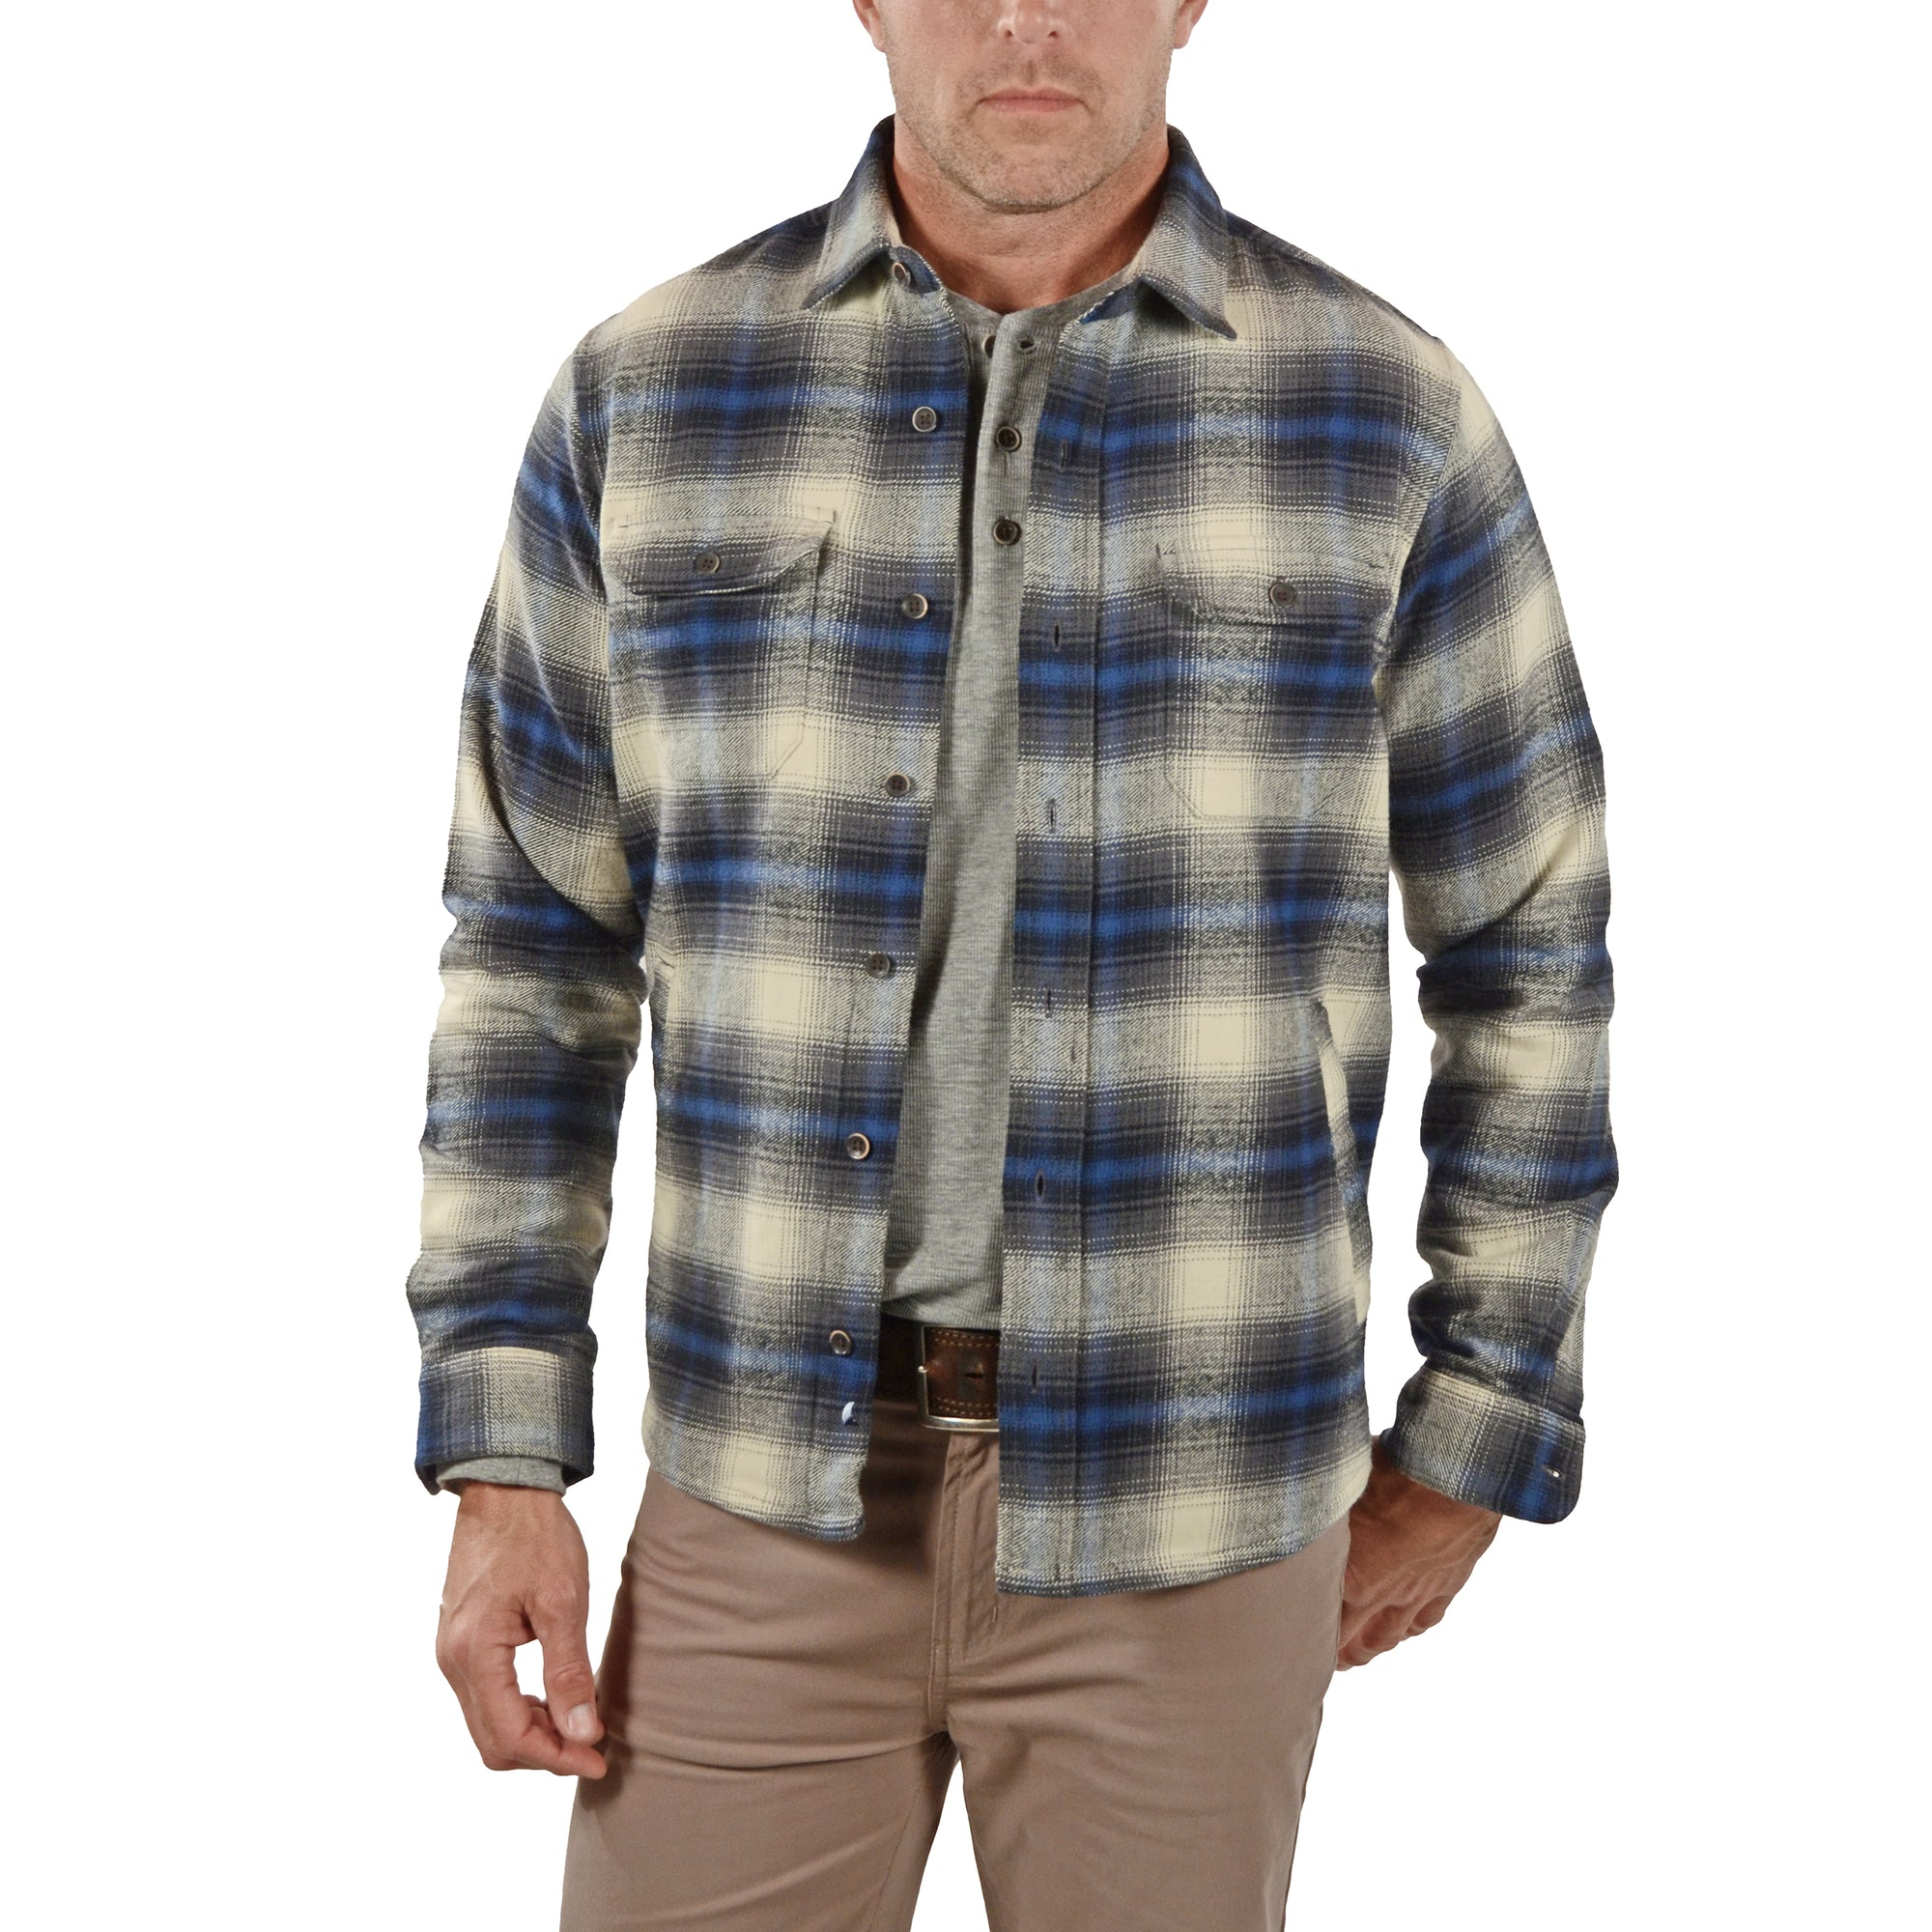 Front View Airotec® Performance Heavy Weight Df Shirt Jacket in Navy Apres Df Plaid